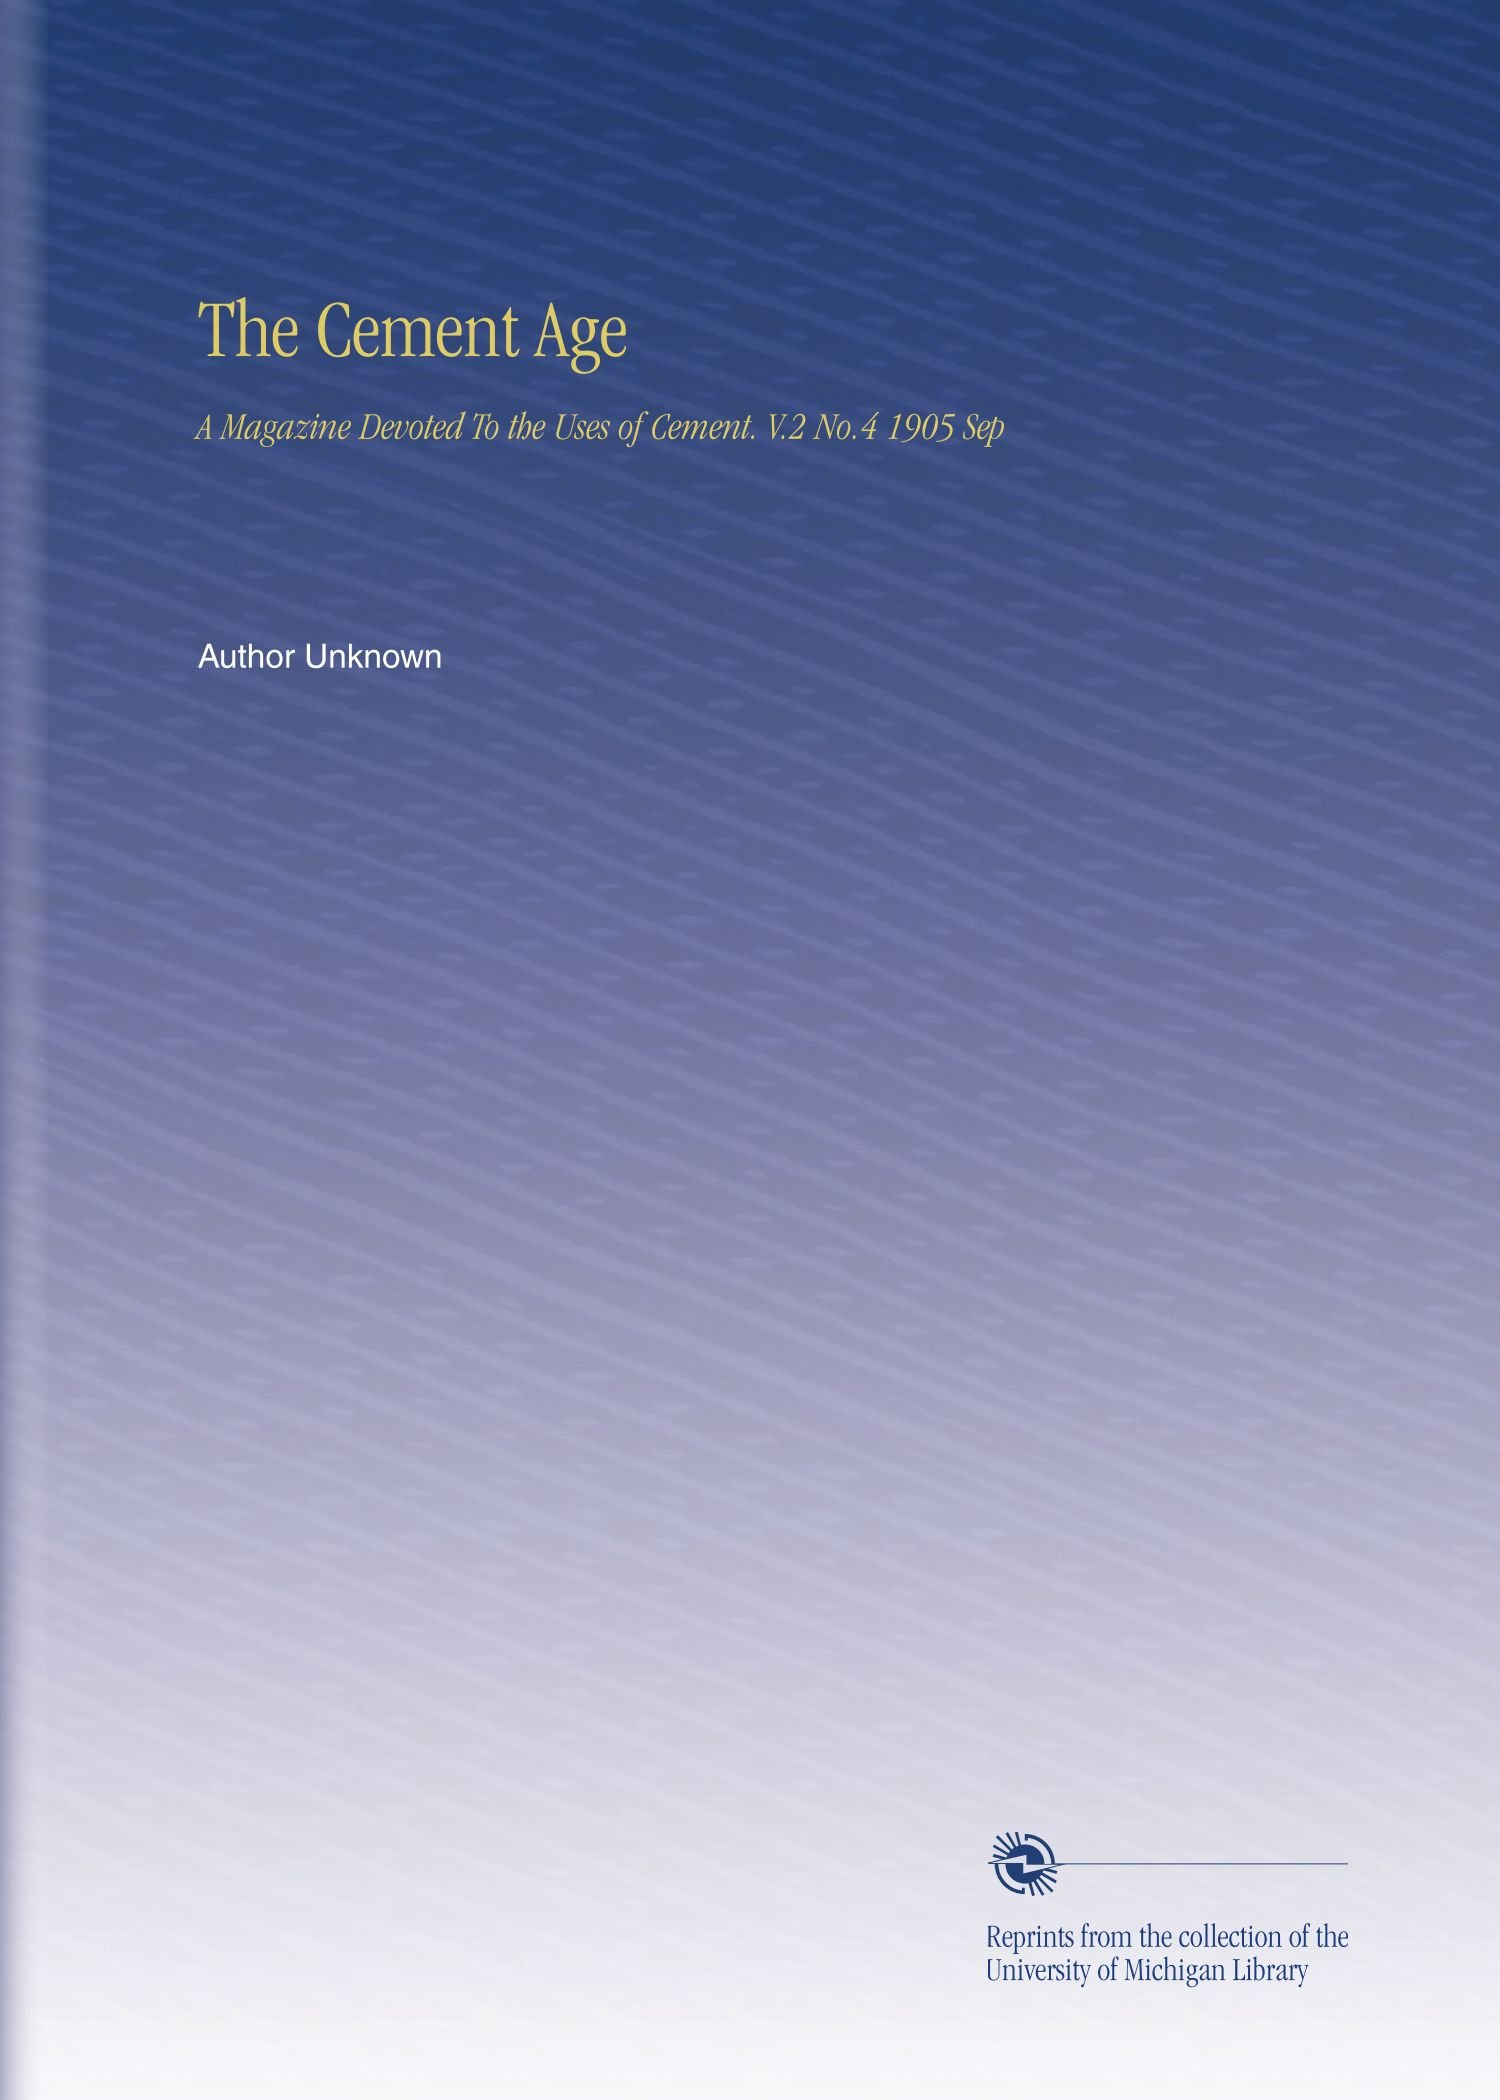 Download The Cement Age: A Magazine Devoted To the Uses of Cement. V.2 No.4 1905 Sep pdf